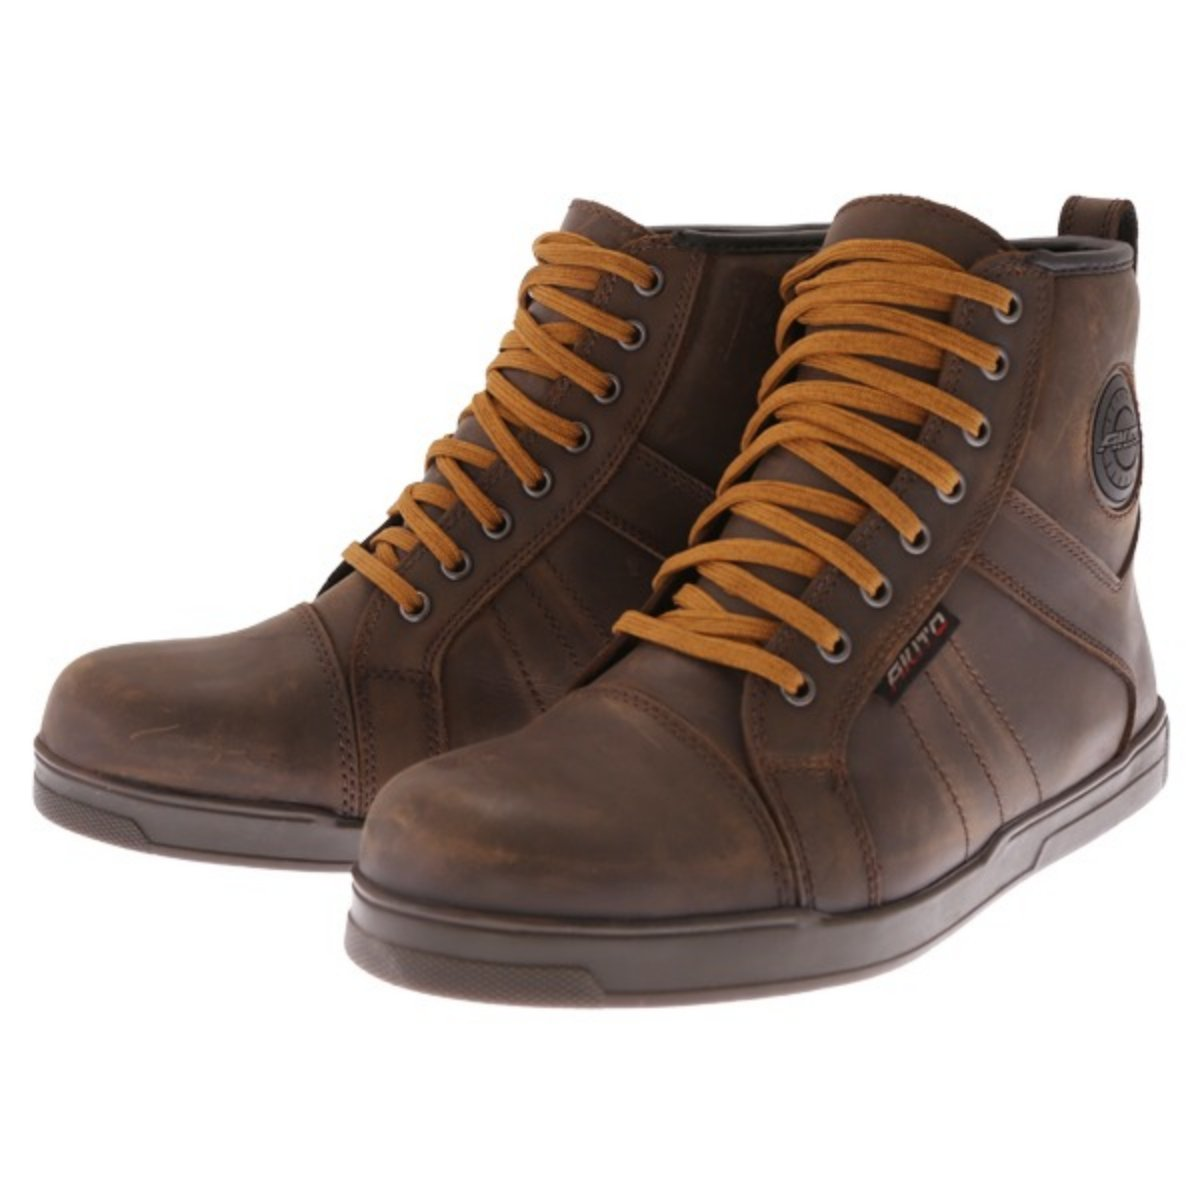 Akito Citizen Brown Waterproof Motorcycle Boots